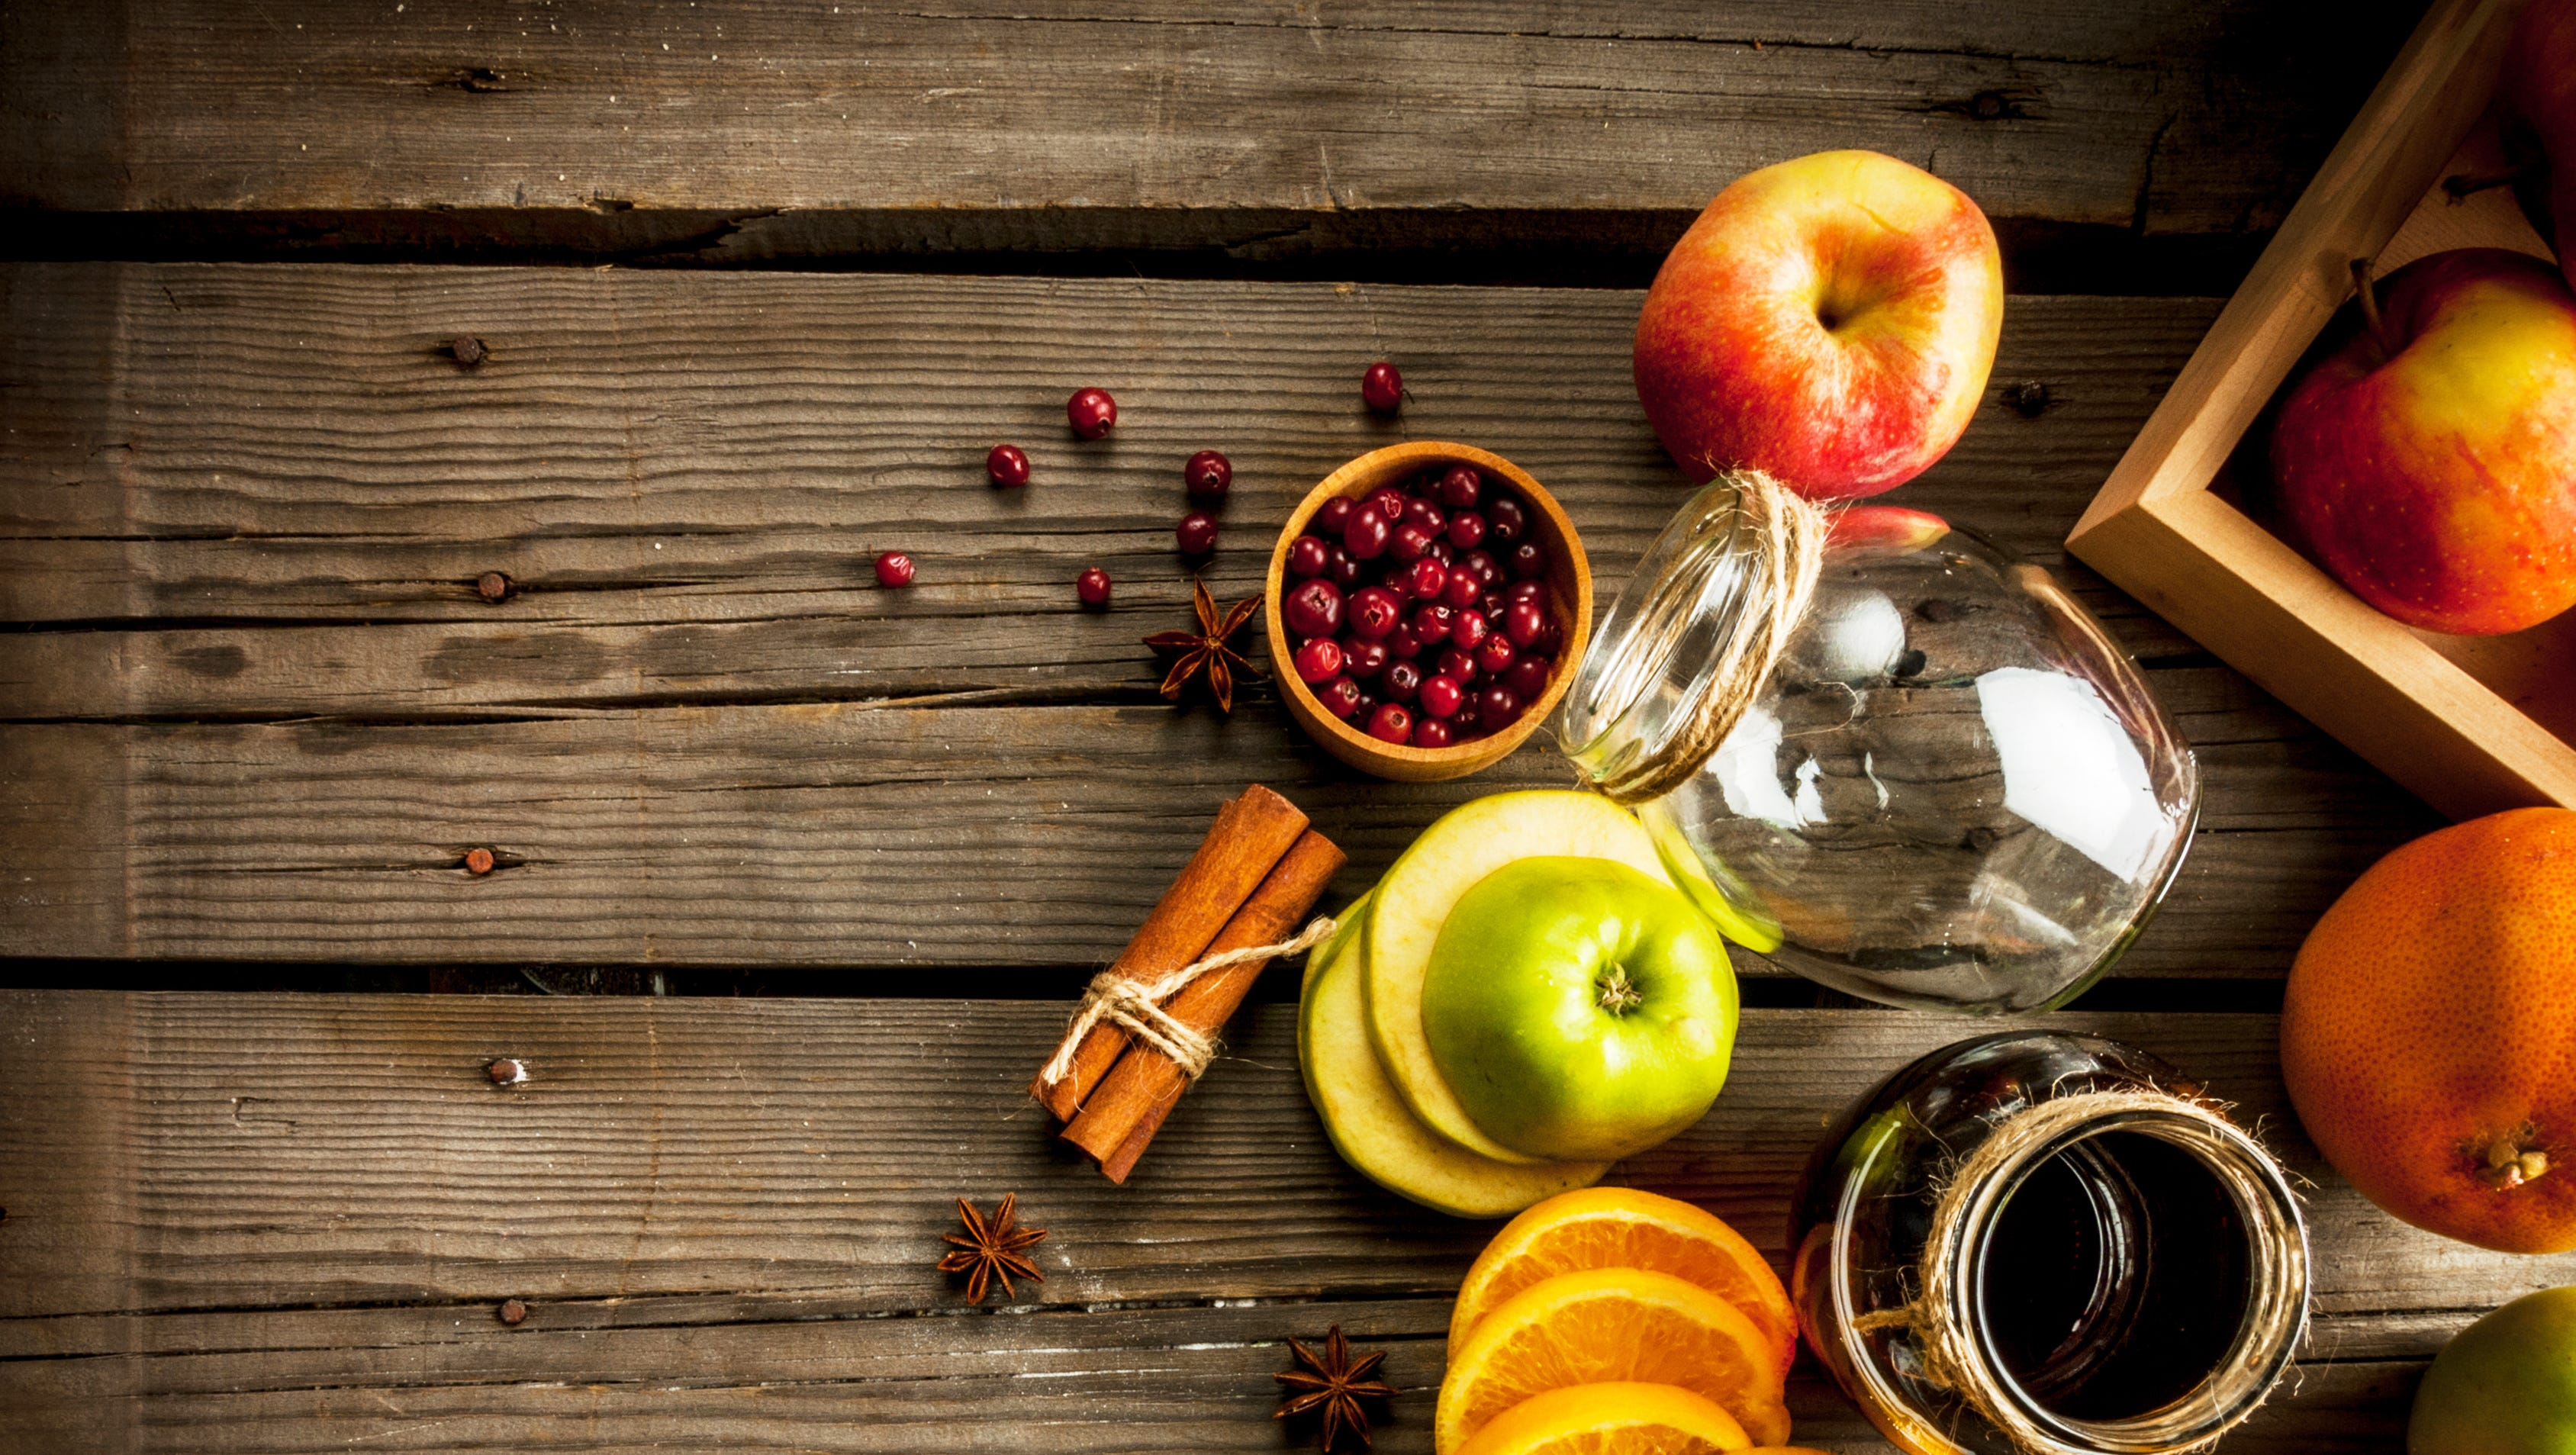 Have a taste of autumn with a fall-inspired cocktail.